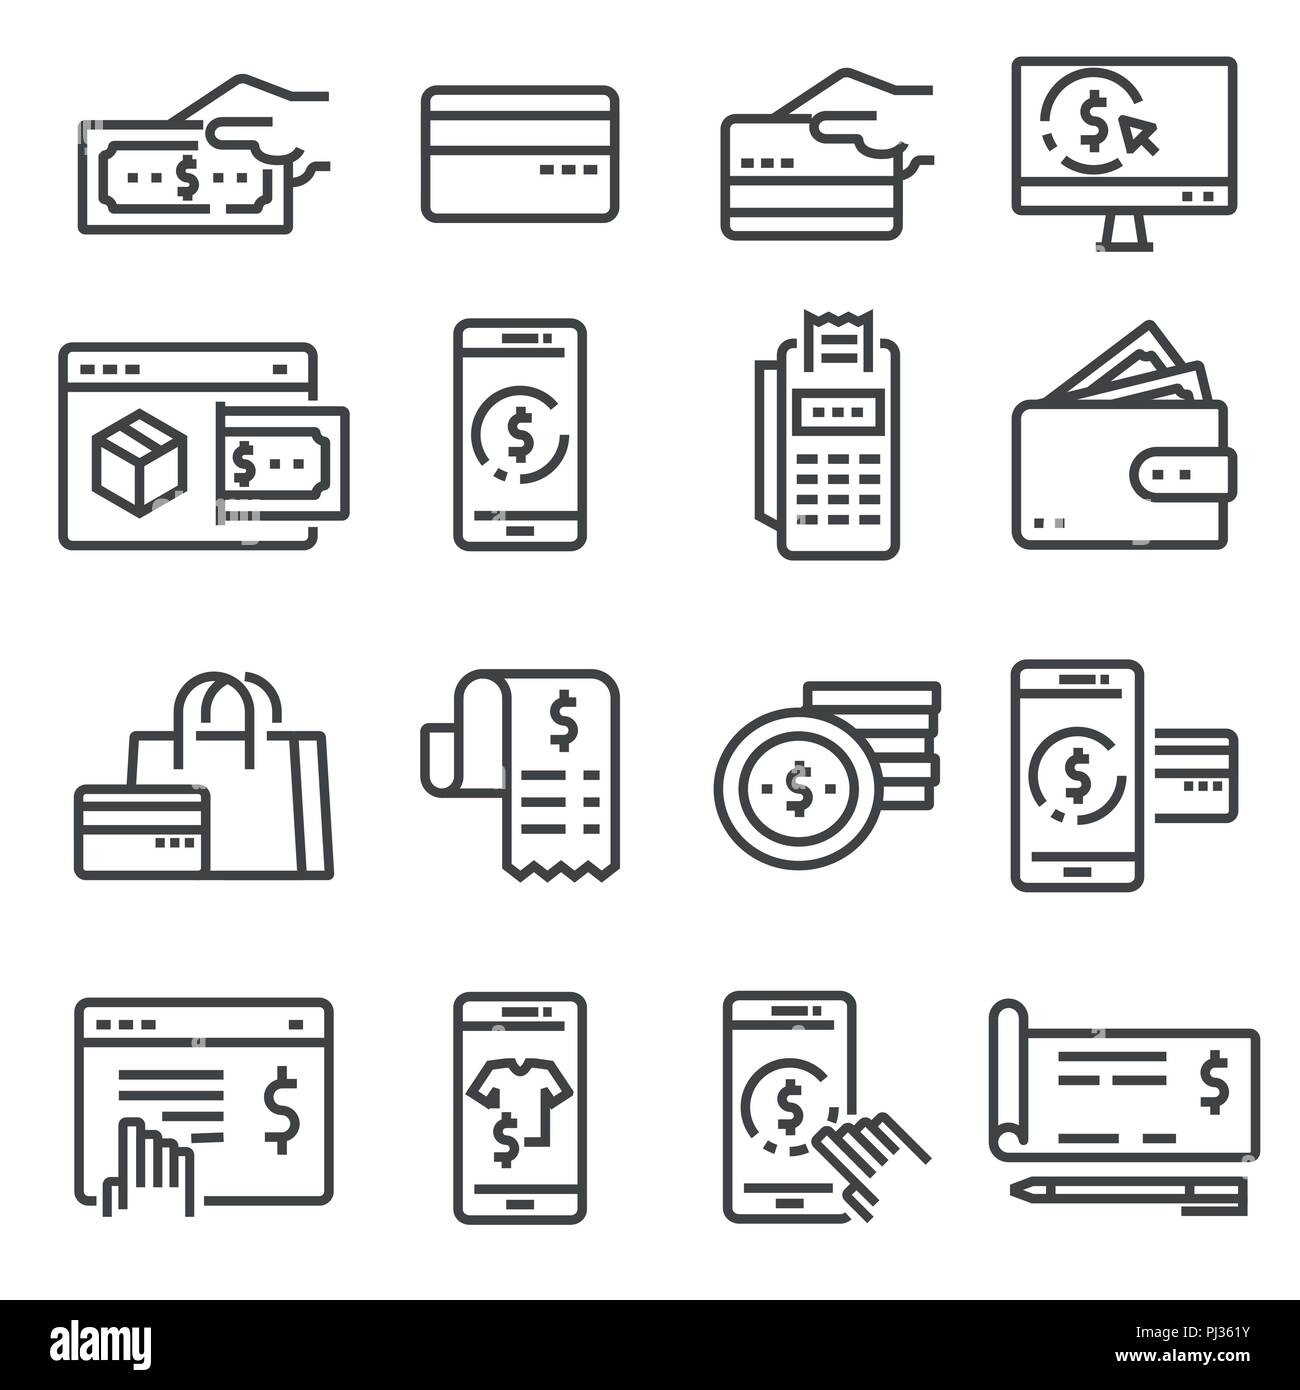 Payment Icons Vector Collection Filled Payment Icons Credit Card